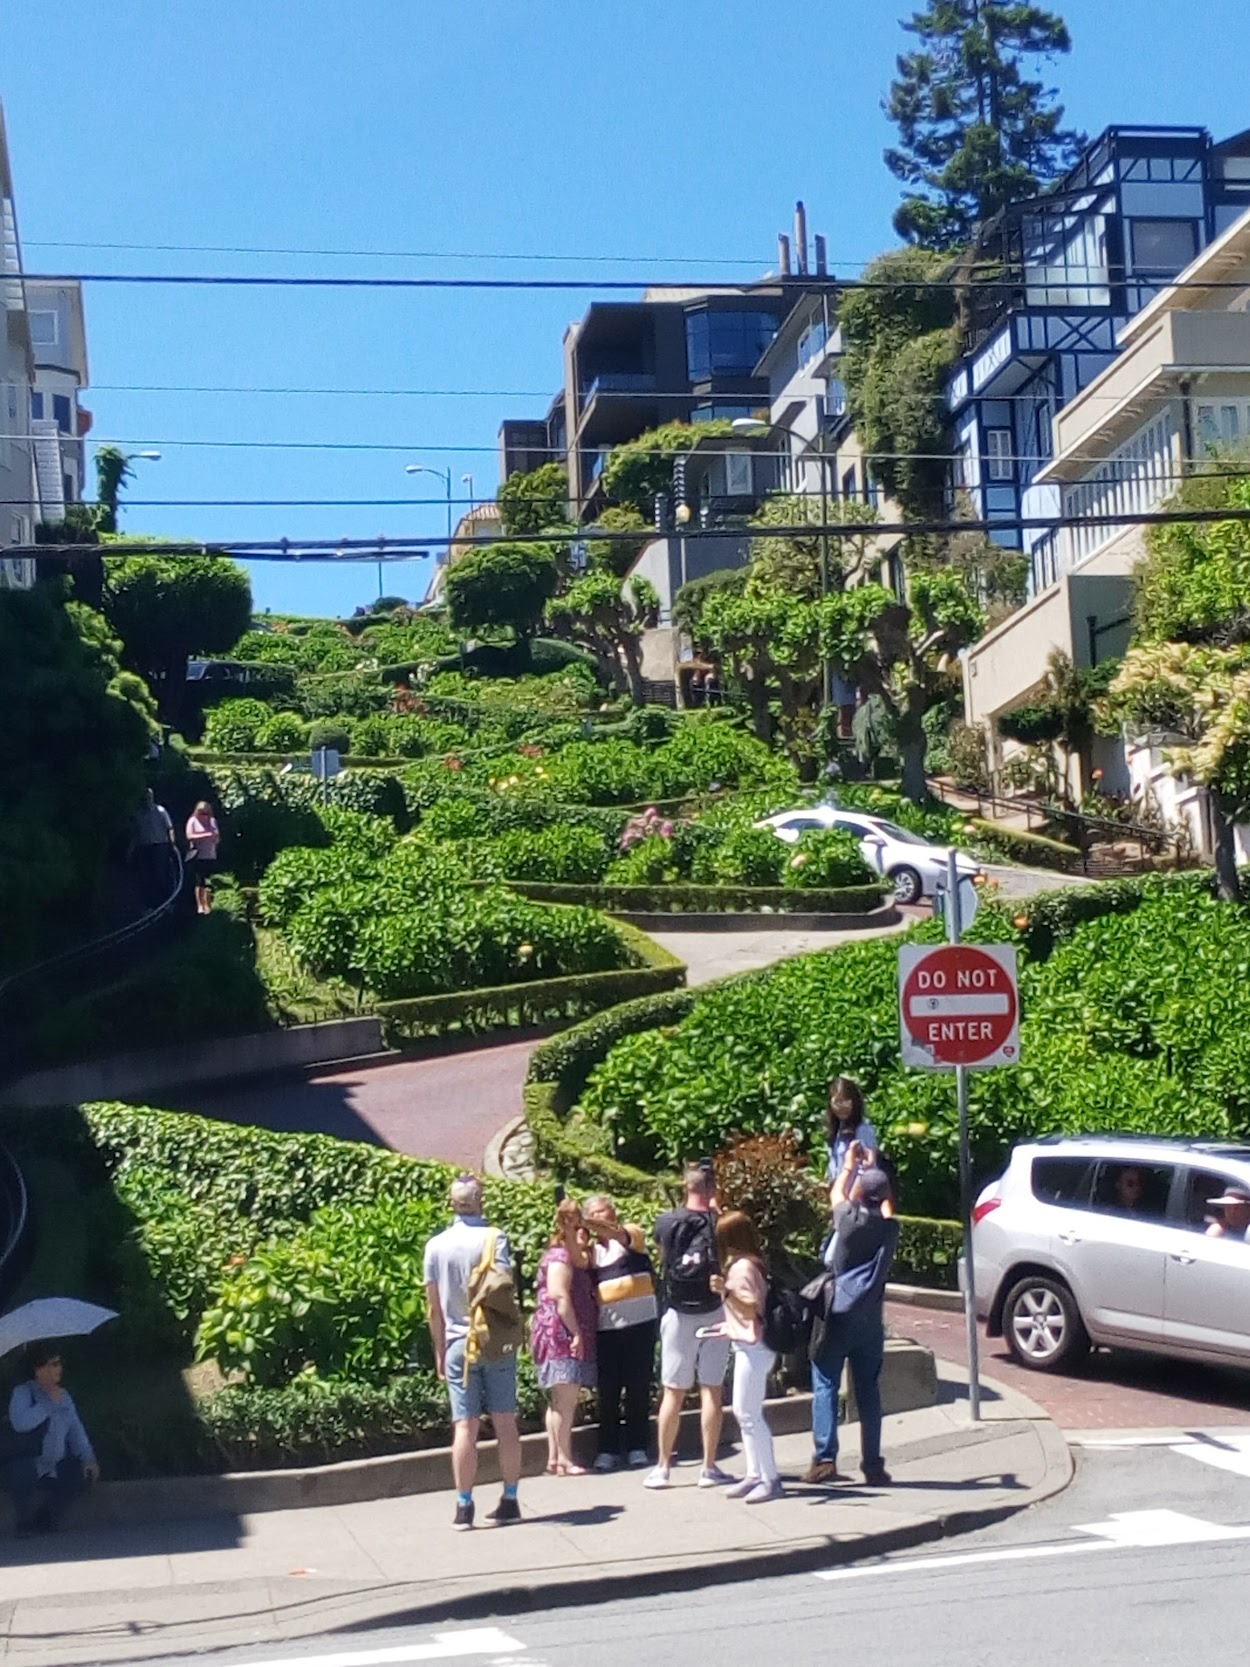 San Francisco Bay Area - Lombard Street